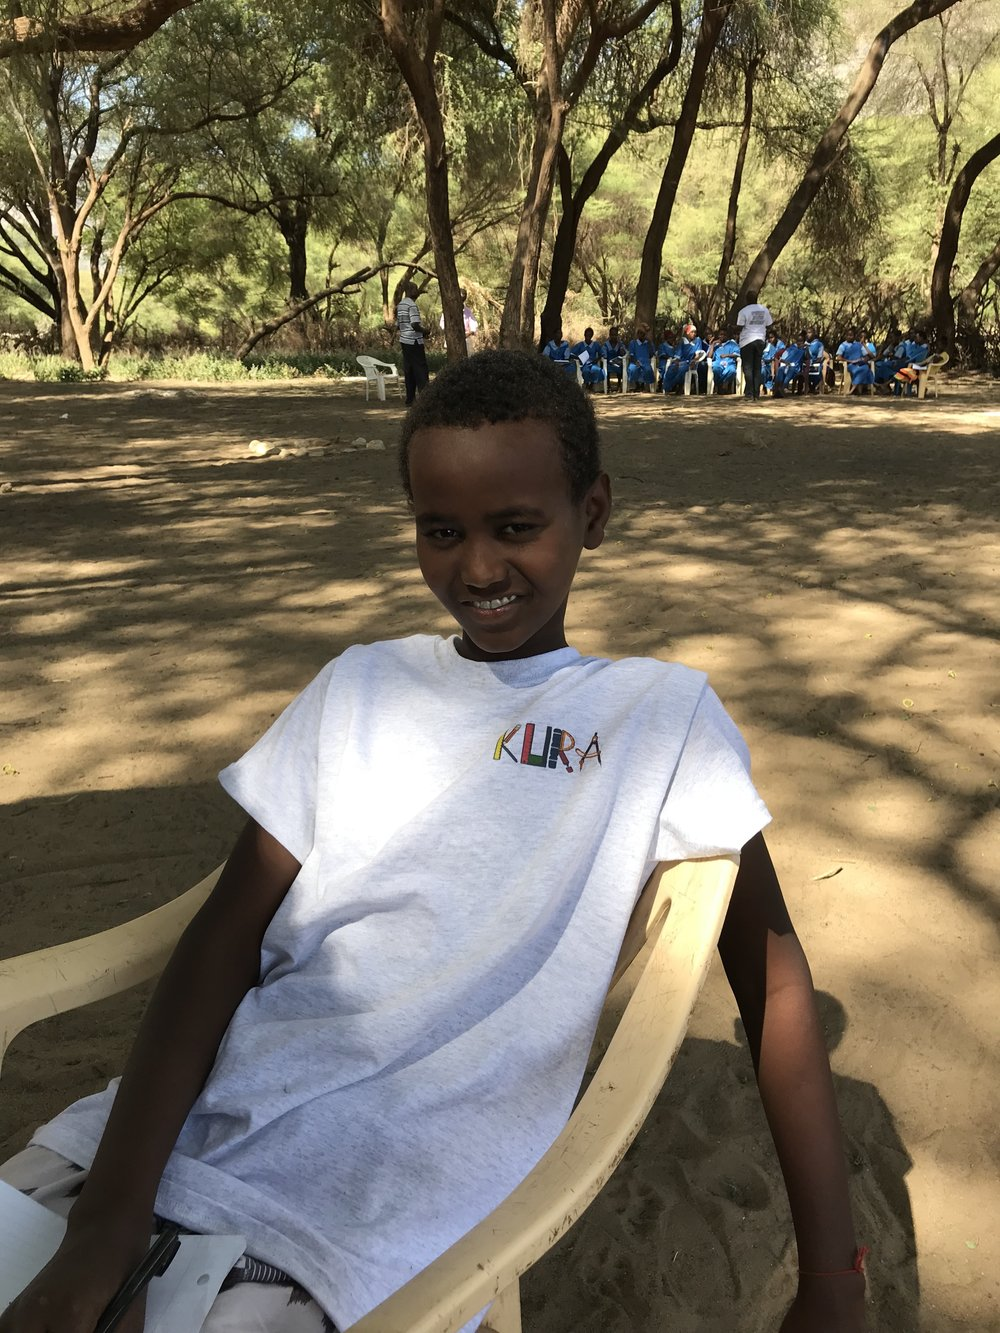 Ayub - Ayub attends the Meru School in Meru, Kenya. He lives with his mother, two brothers and three sisters. Drought greatly affected his family's finances, but he did not lose hope.